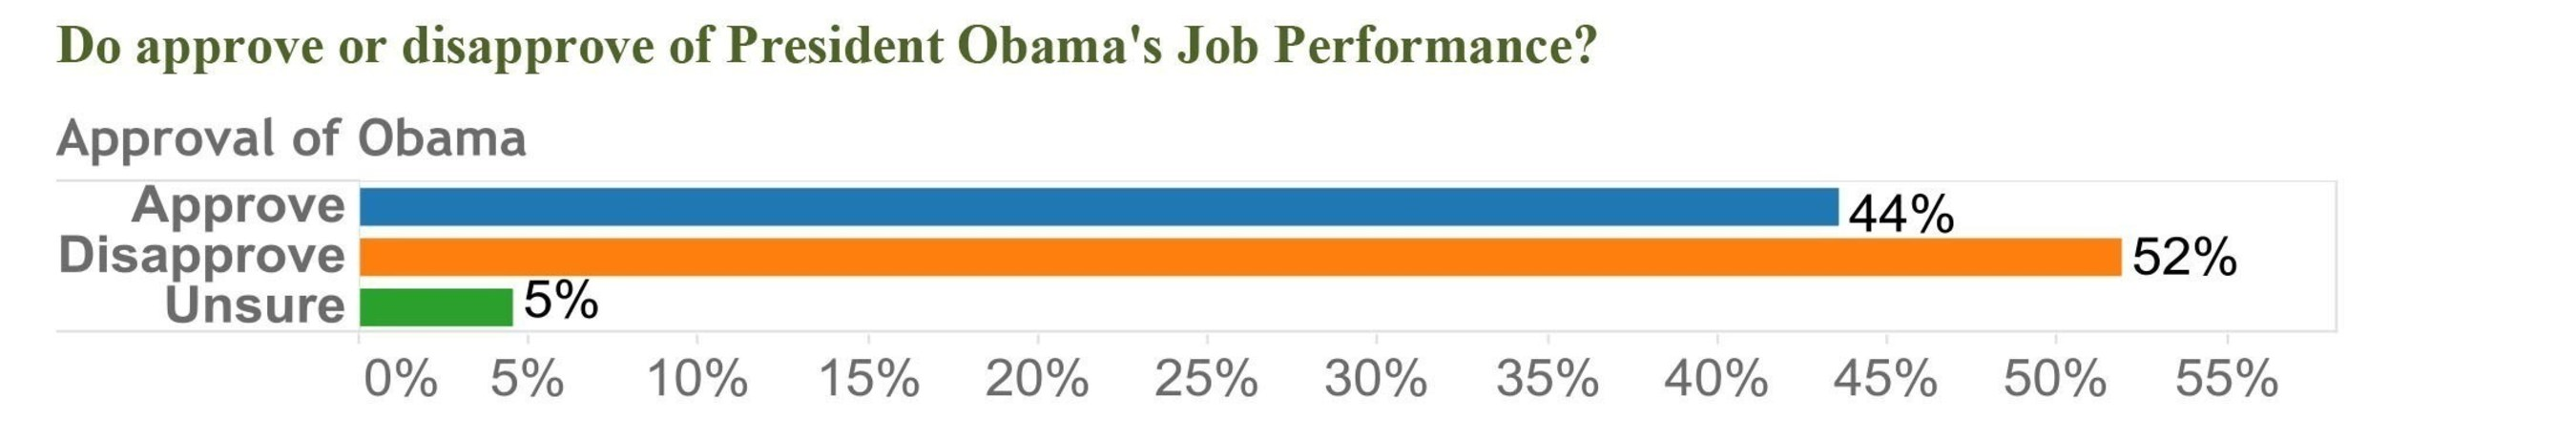 Do approve or disapprove of President Obama's Job Performance